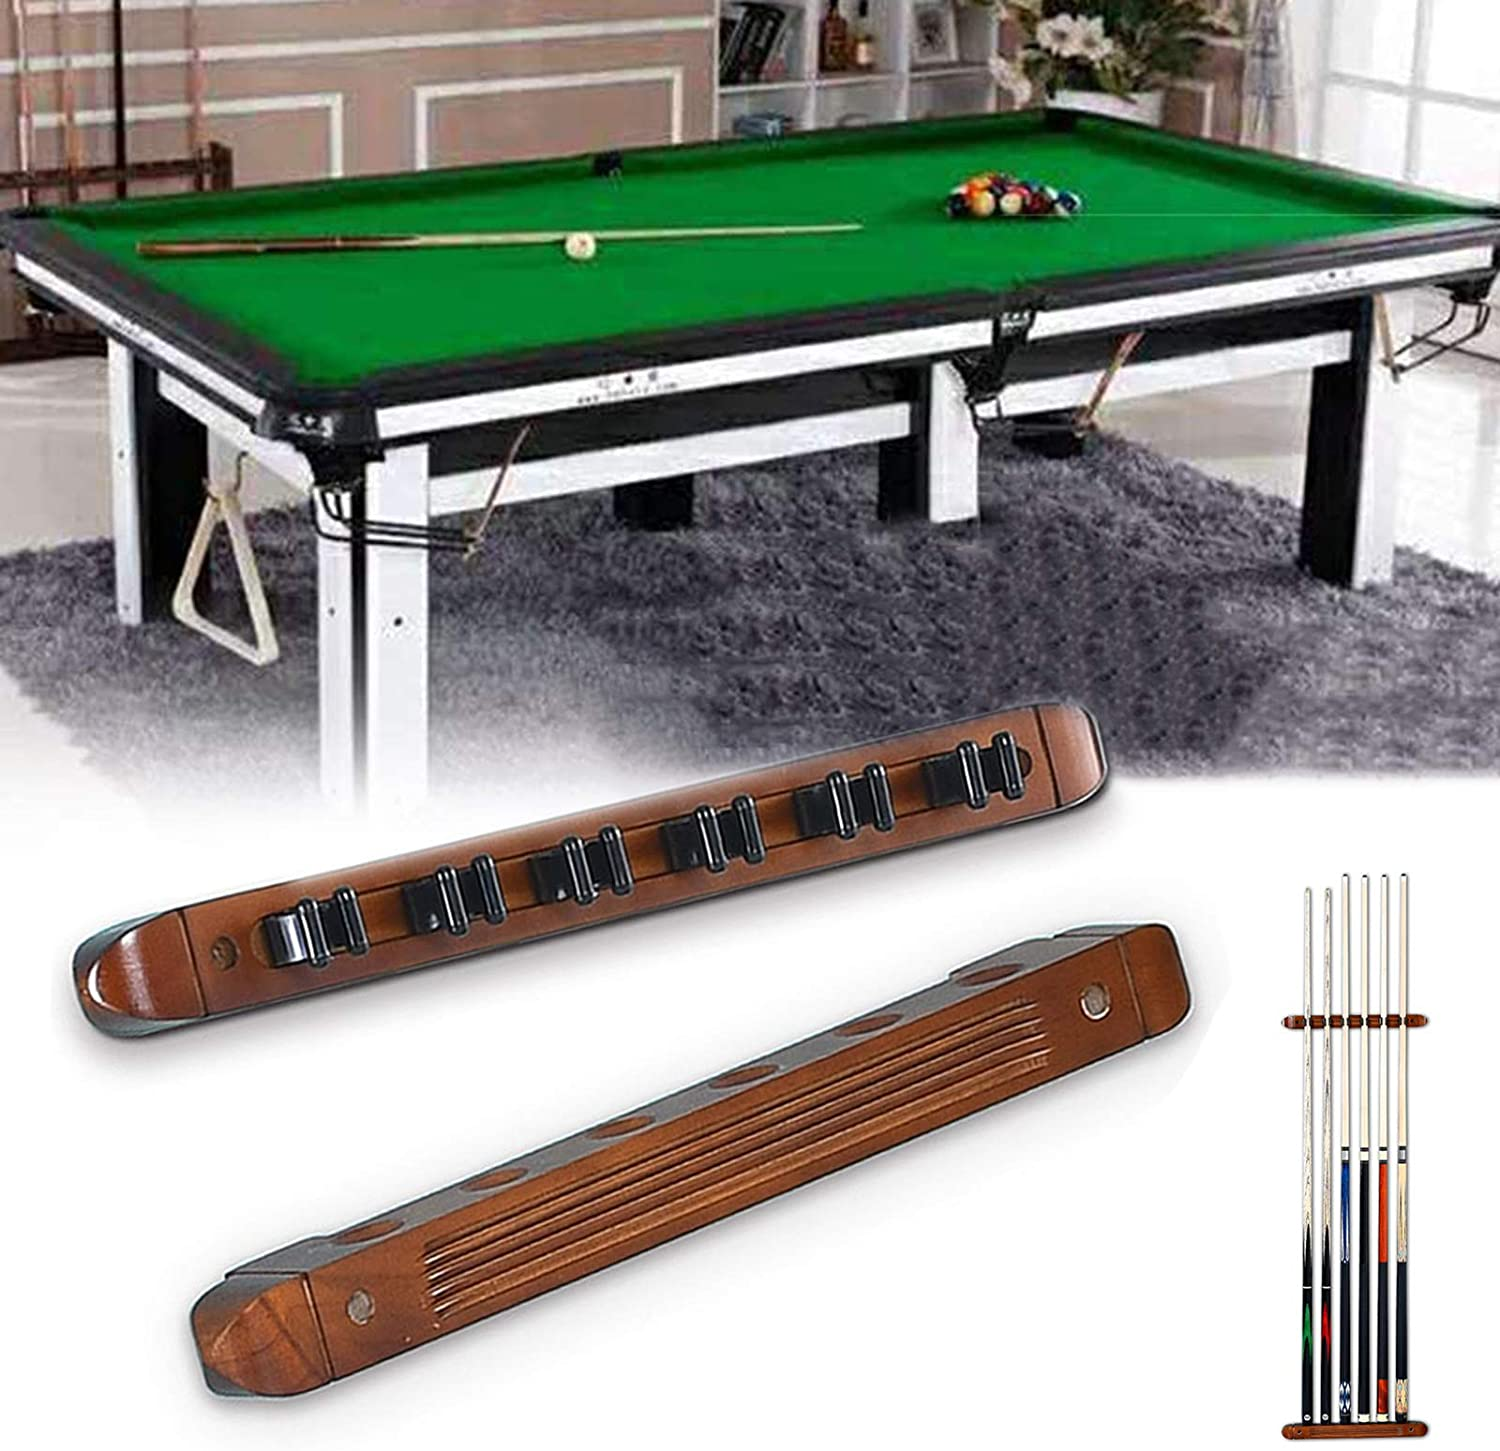 LMDX Wooden Billiard Stick Stand - Snooker Cue 70% OFF Outlet Minneapolis Mall Pool Rack Wall